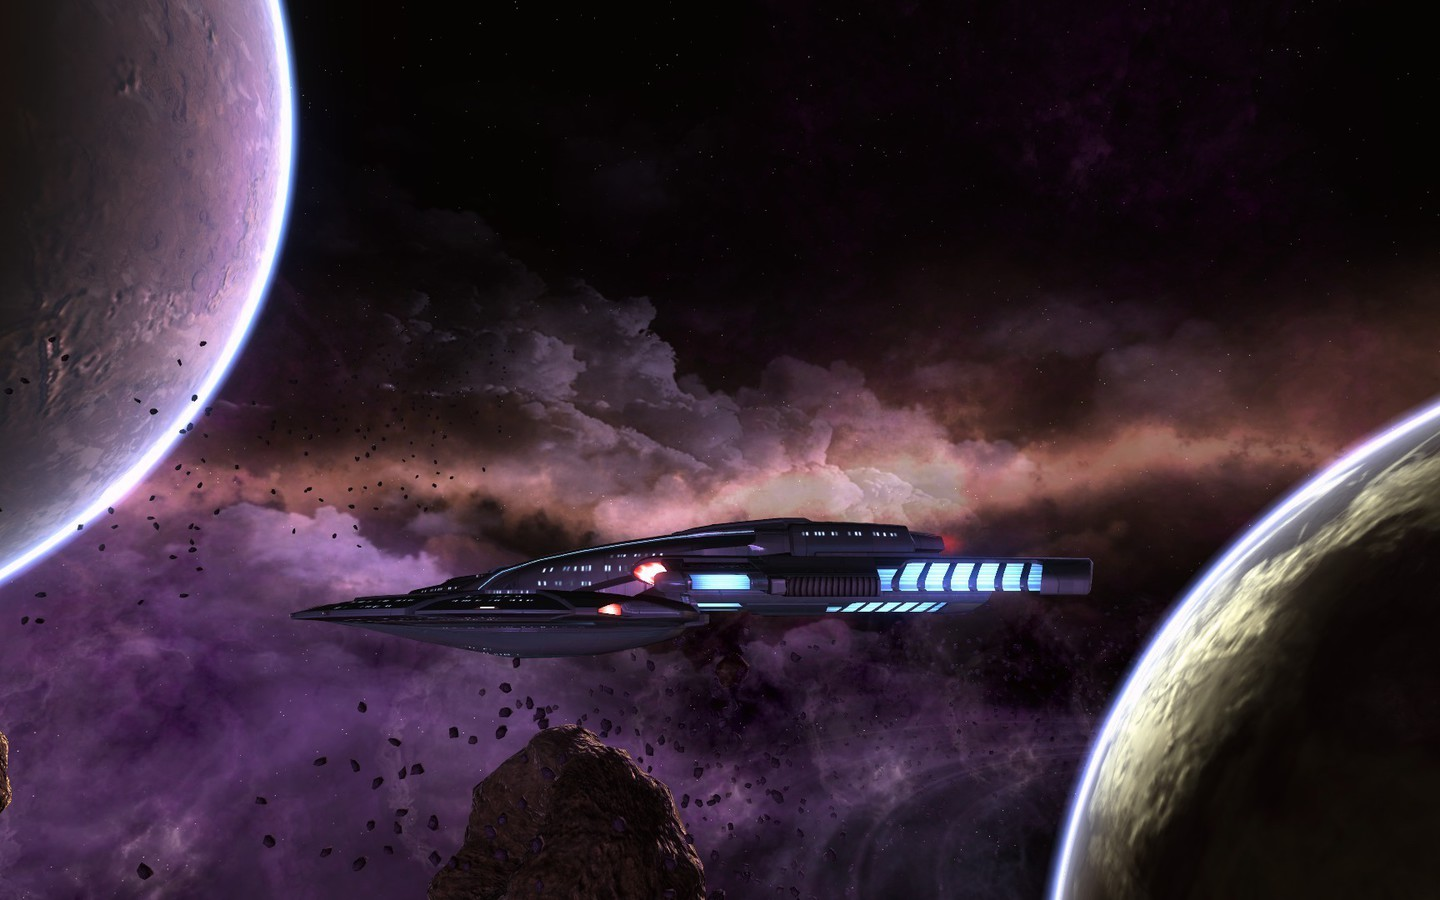 Outer Space Planets Nebulae Star Trek Online Spaceships